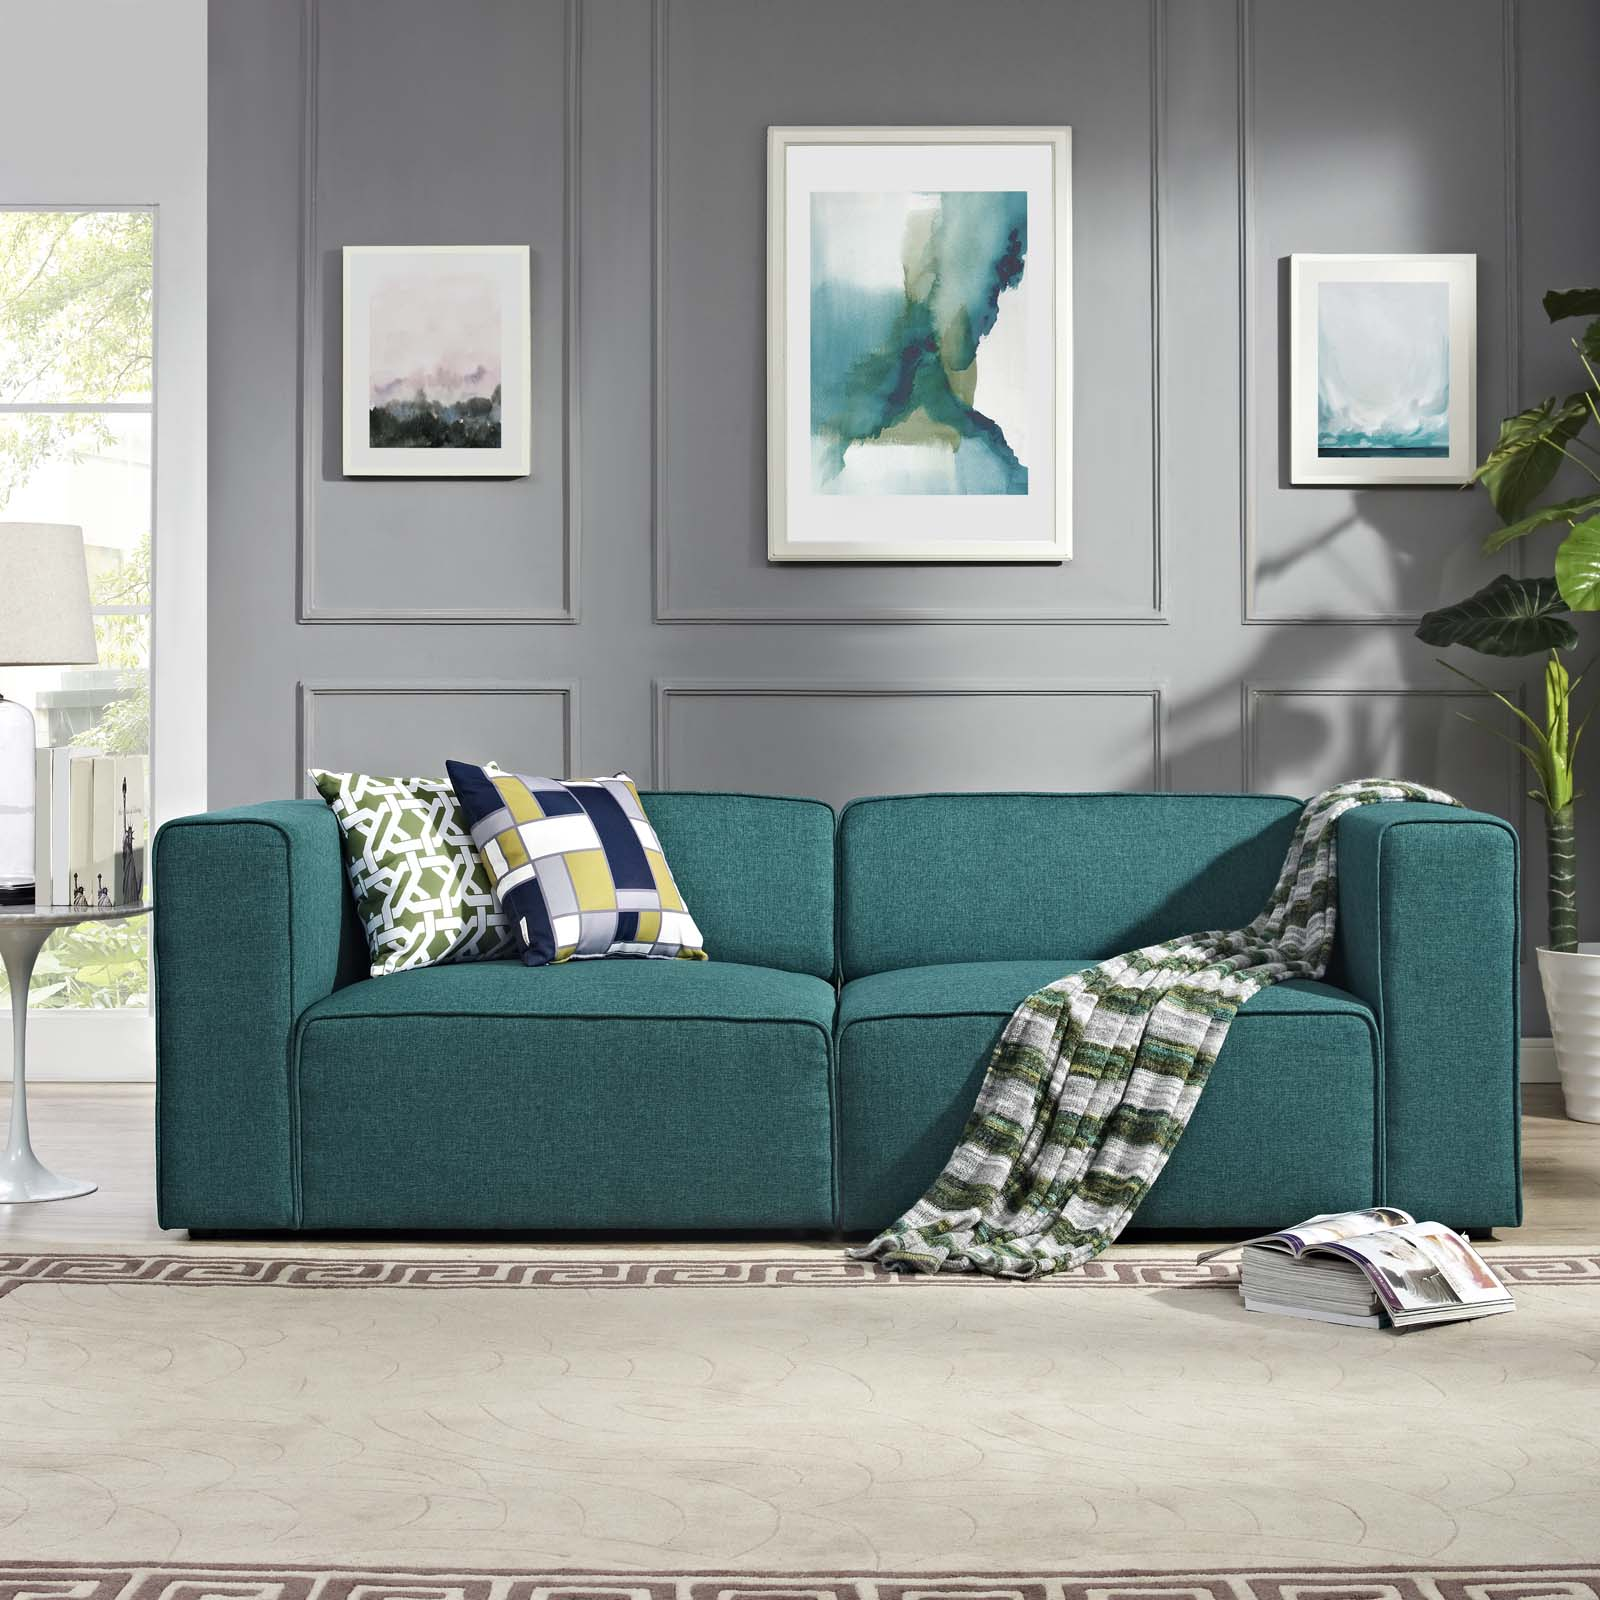 Superb Mingle 2 Piece Upholstered Fabric Sectional Sofa Set Teal Inzonedesignstudio Interior Chair Design Inzonedesignstudiocom